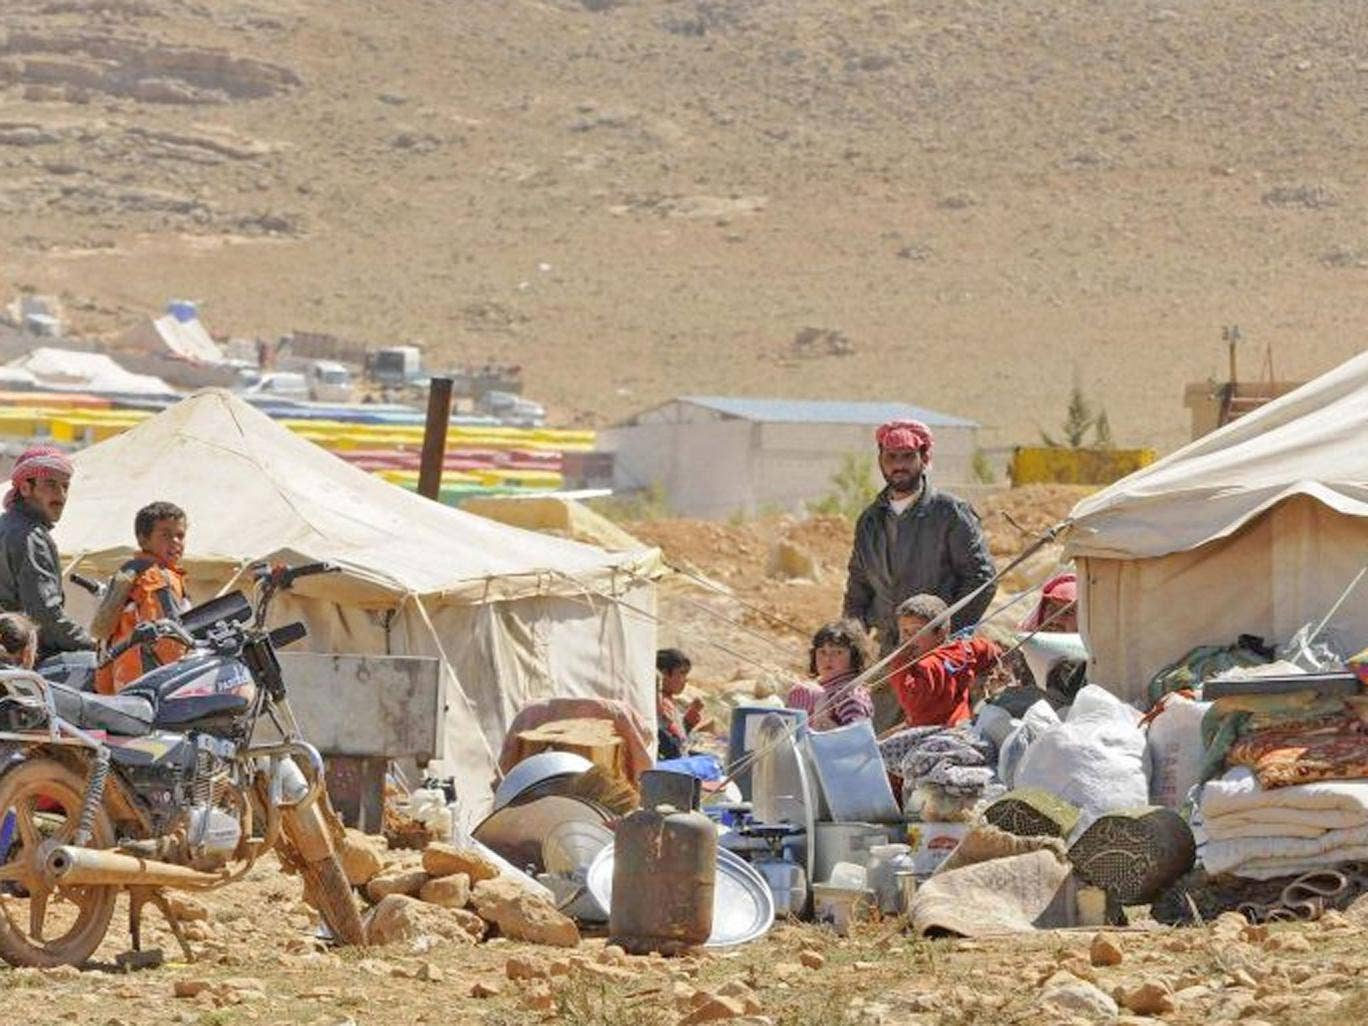 Refugees who fled the violence from the Syrian town of Flita, near Yabroud, stand outside their tents at the border town of Arsal, in the eastern Bekaa Valley. The first of 'several hundred' Syrian refugees to be brought to Britain as part of a Government